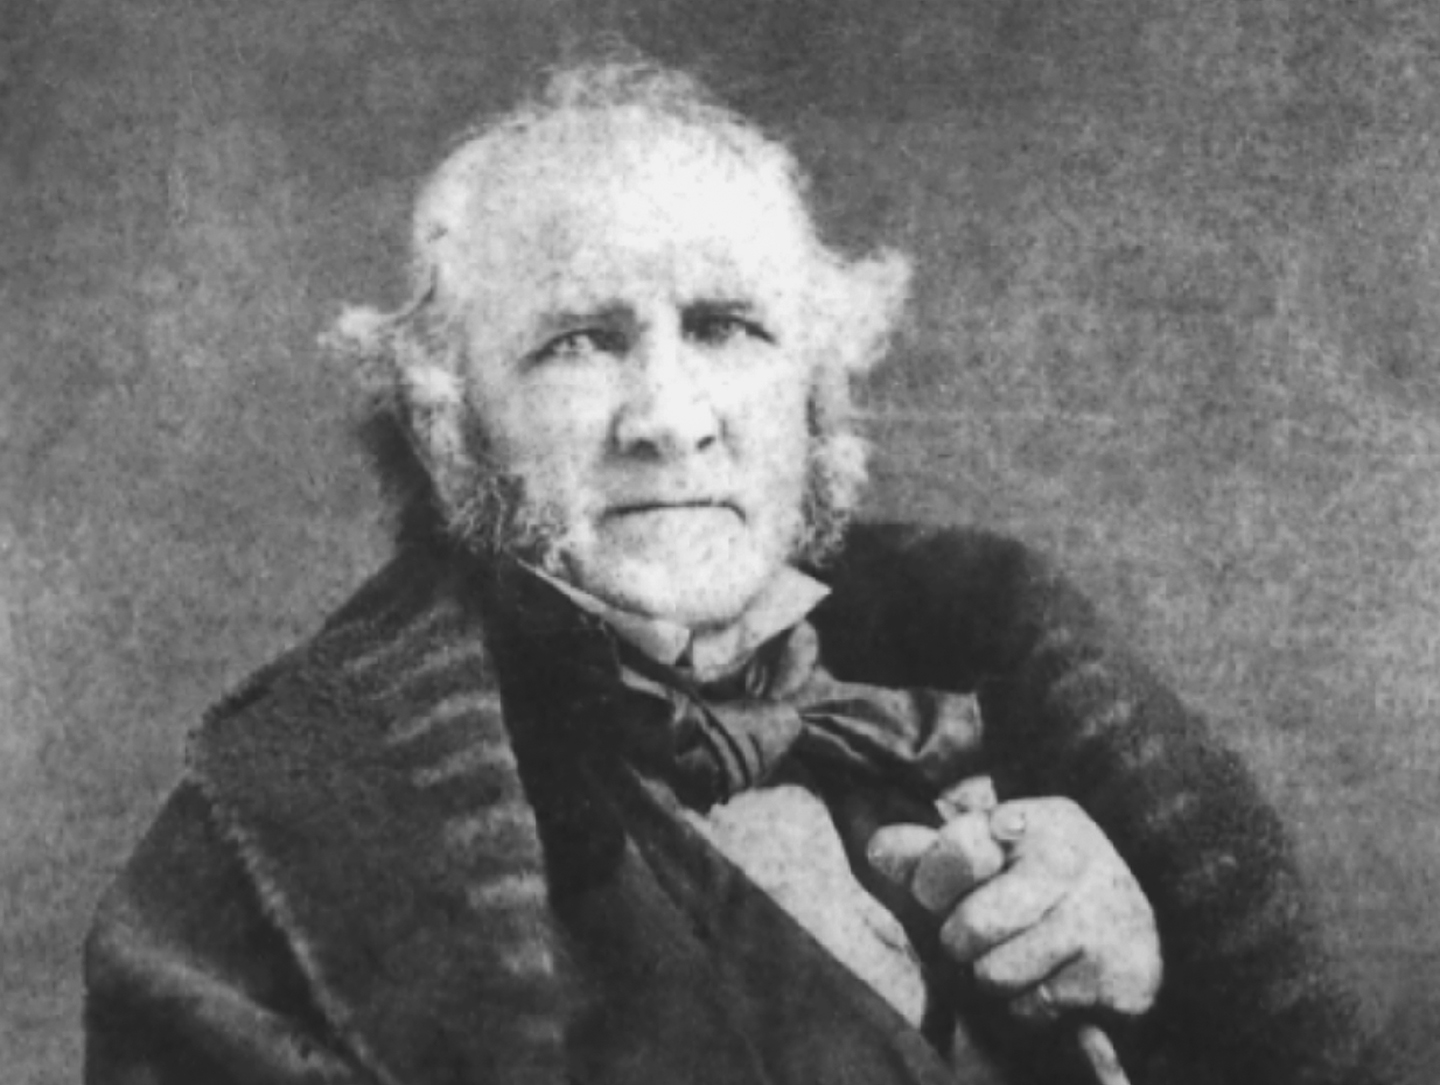 Who was Sam Houston at the end of his life?